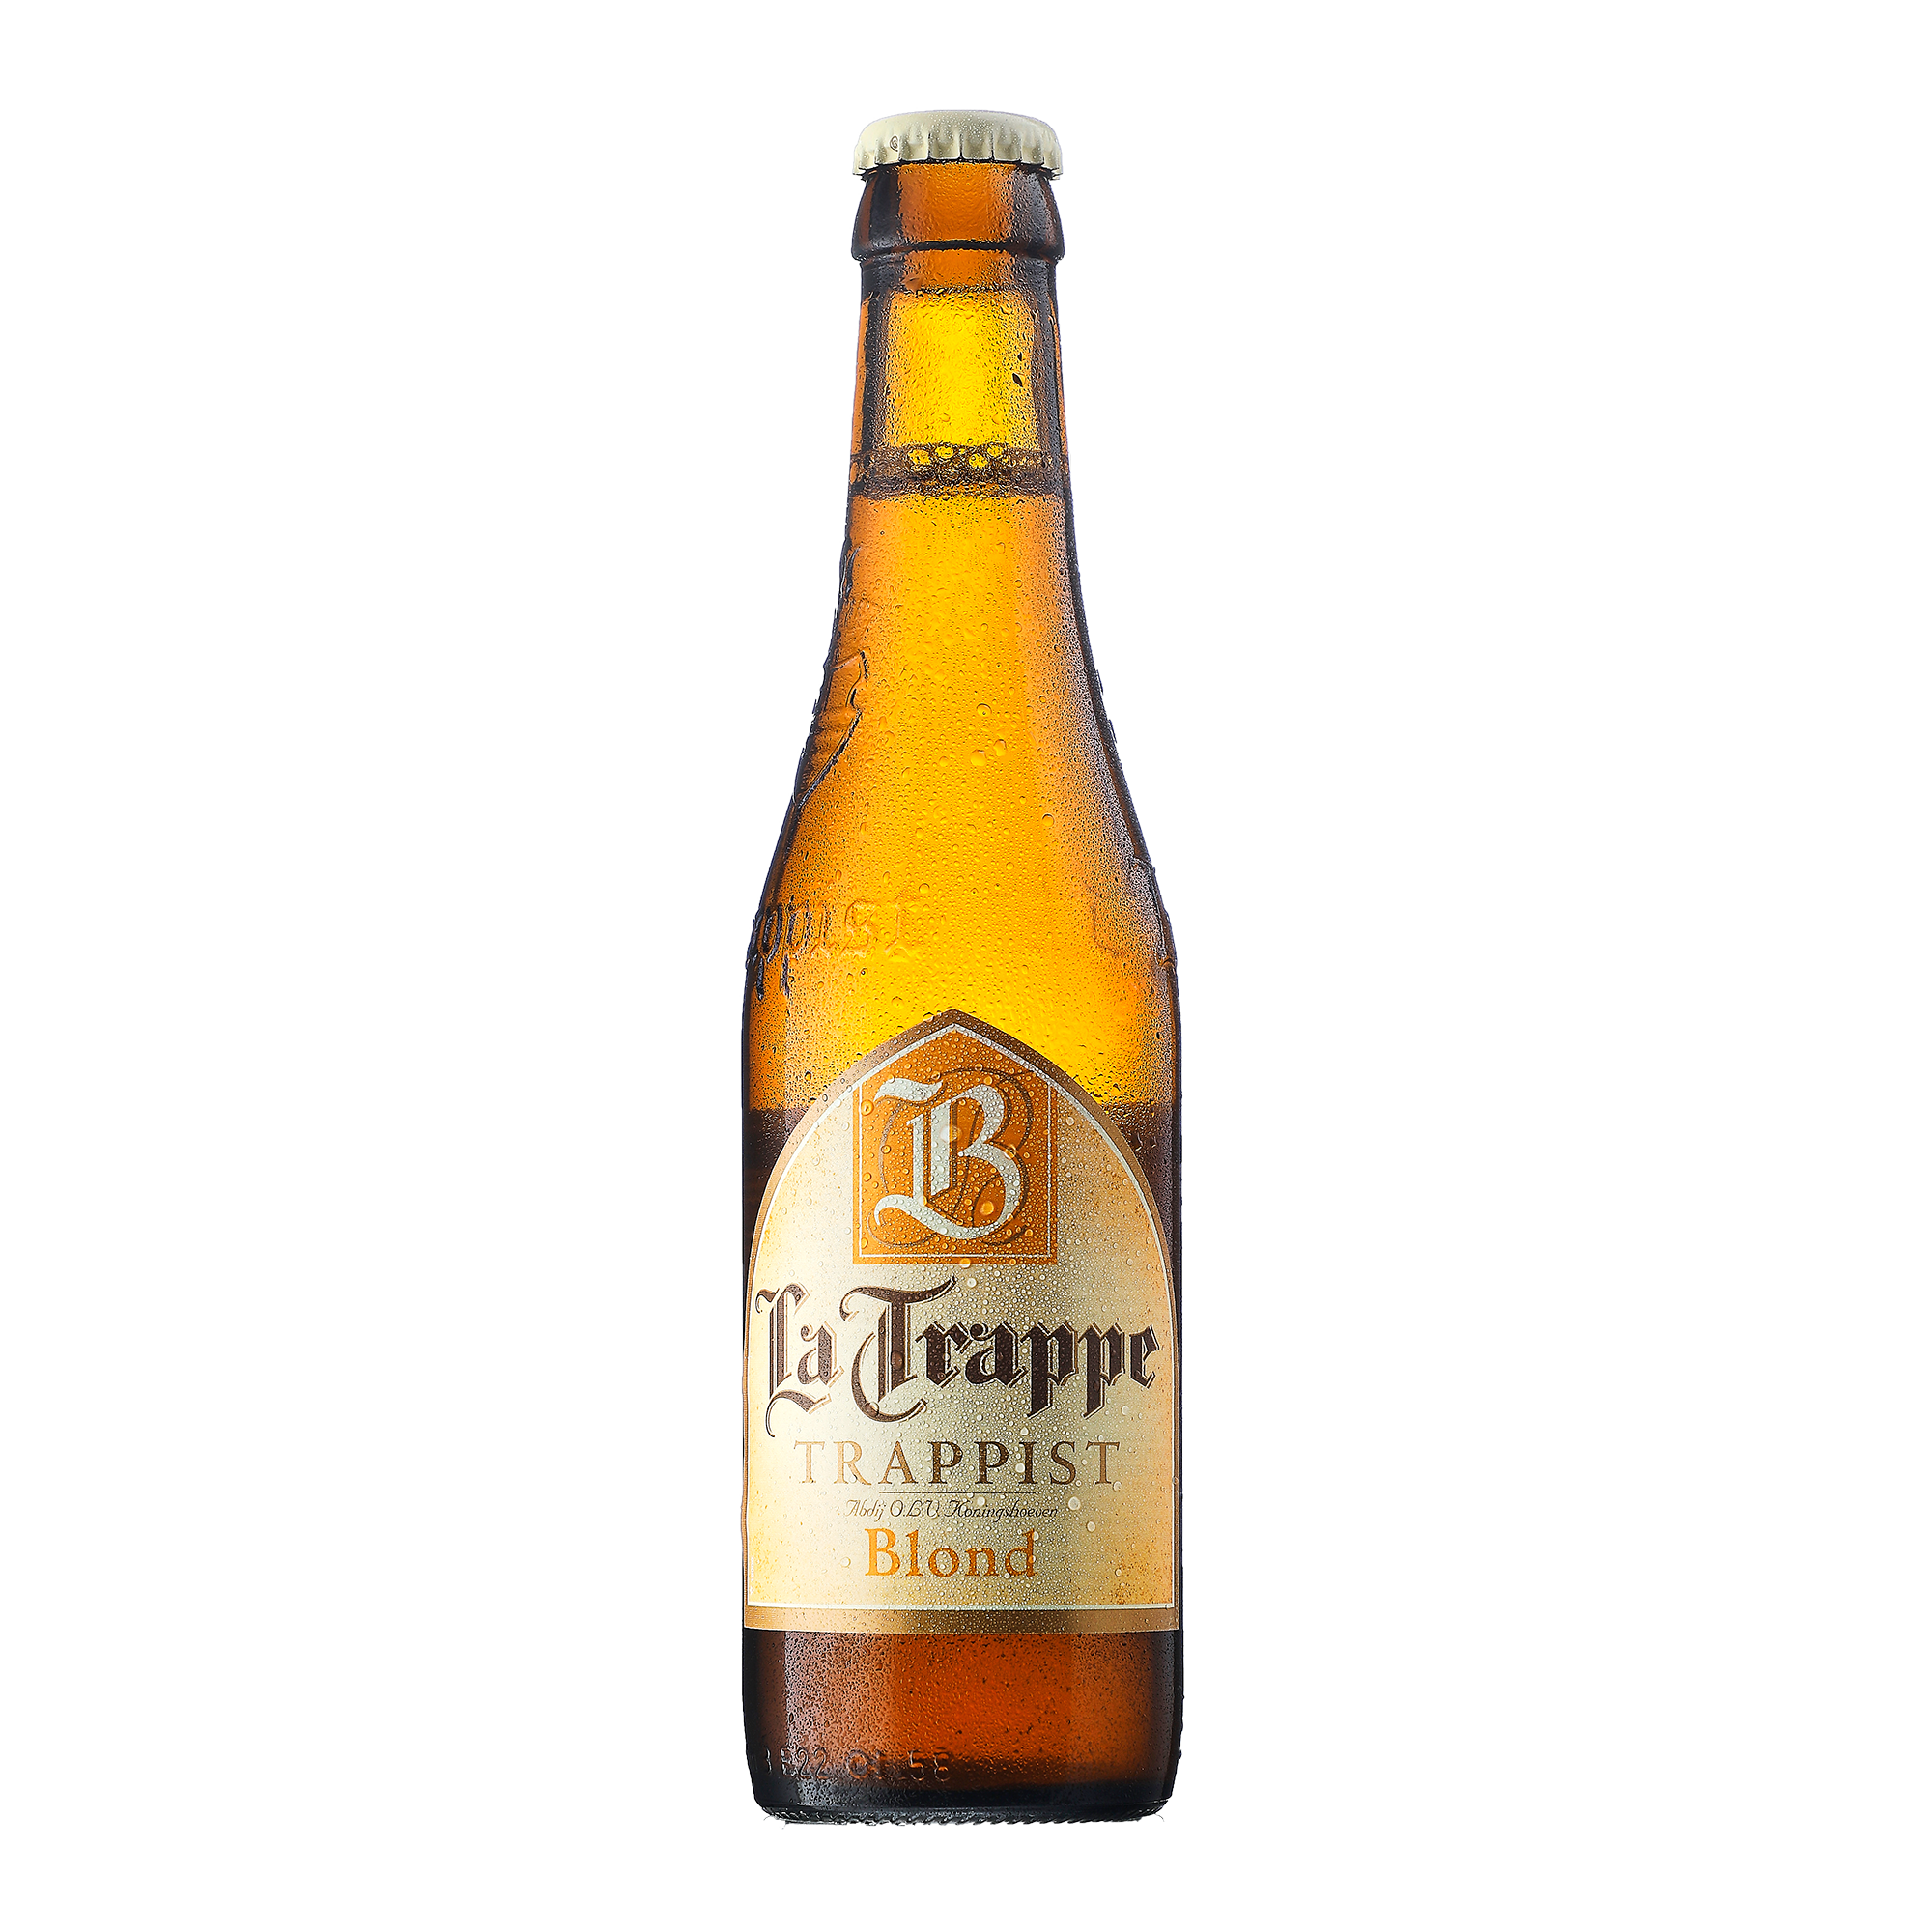 La Trappe - Trappist Blonde Ale - 330ml Bottle